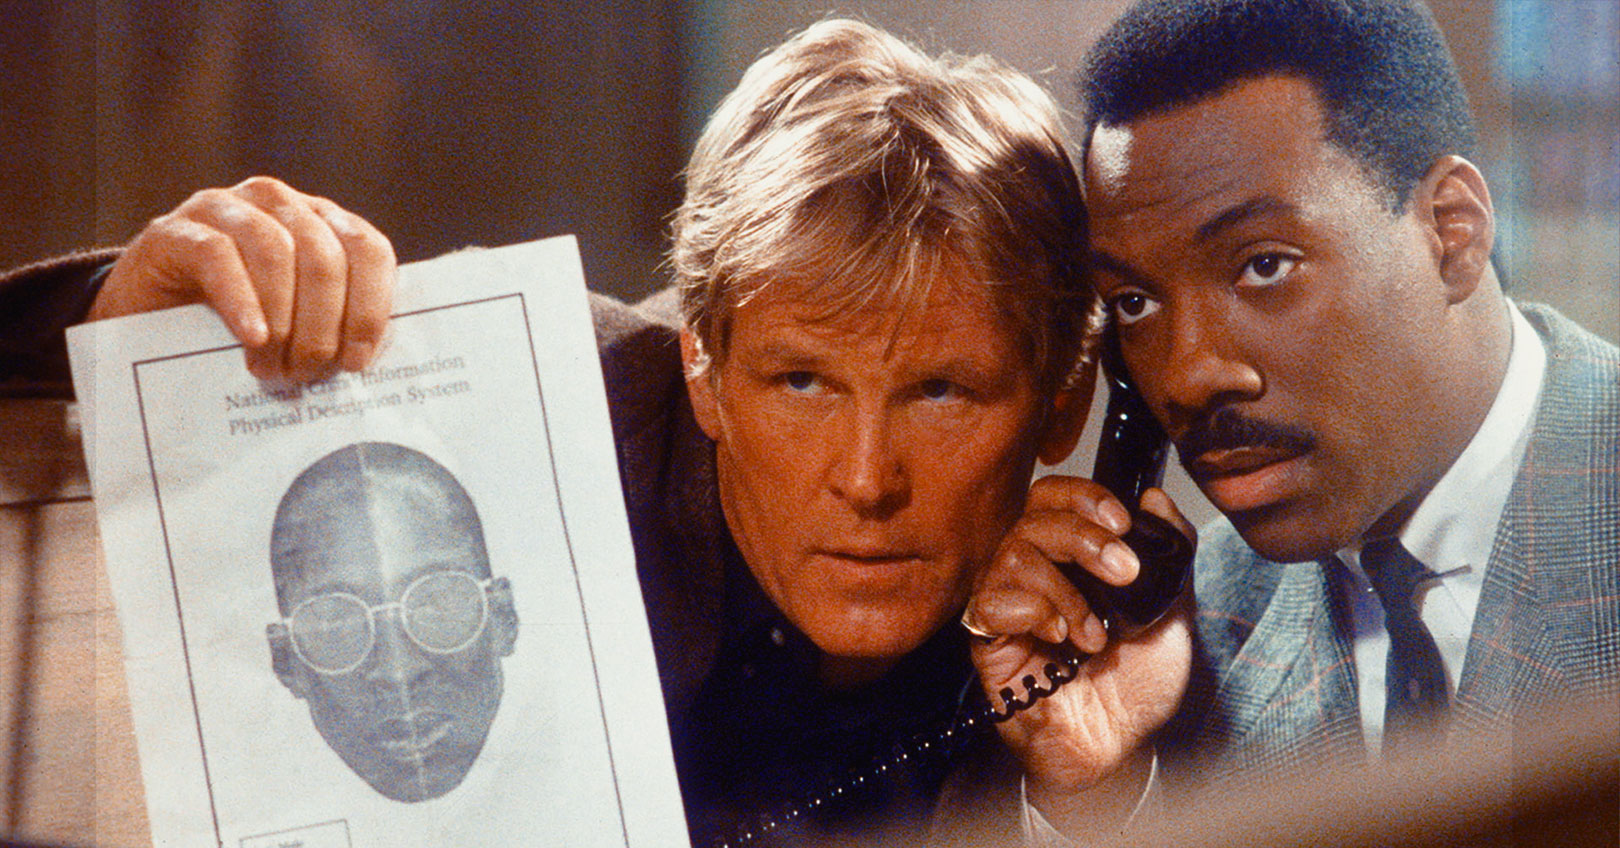 Another 48 Hrs. - Nick Nolte and Eddie Murphy